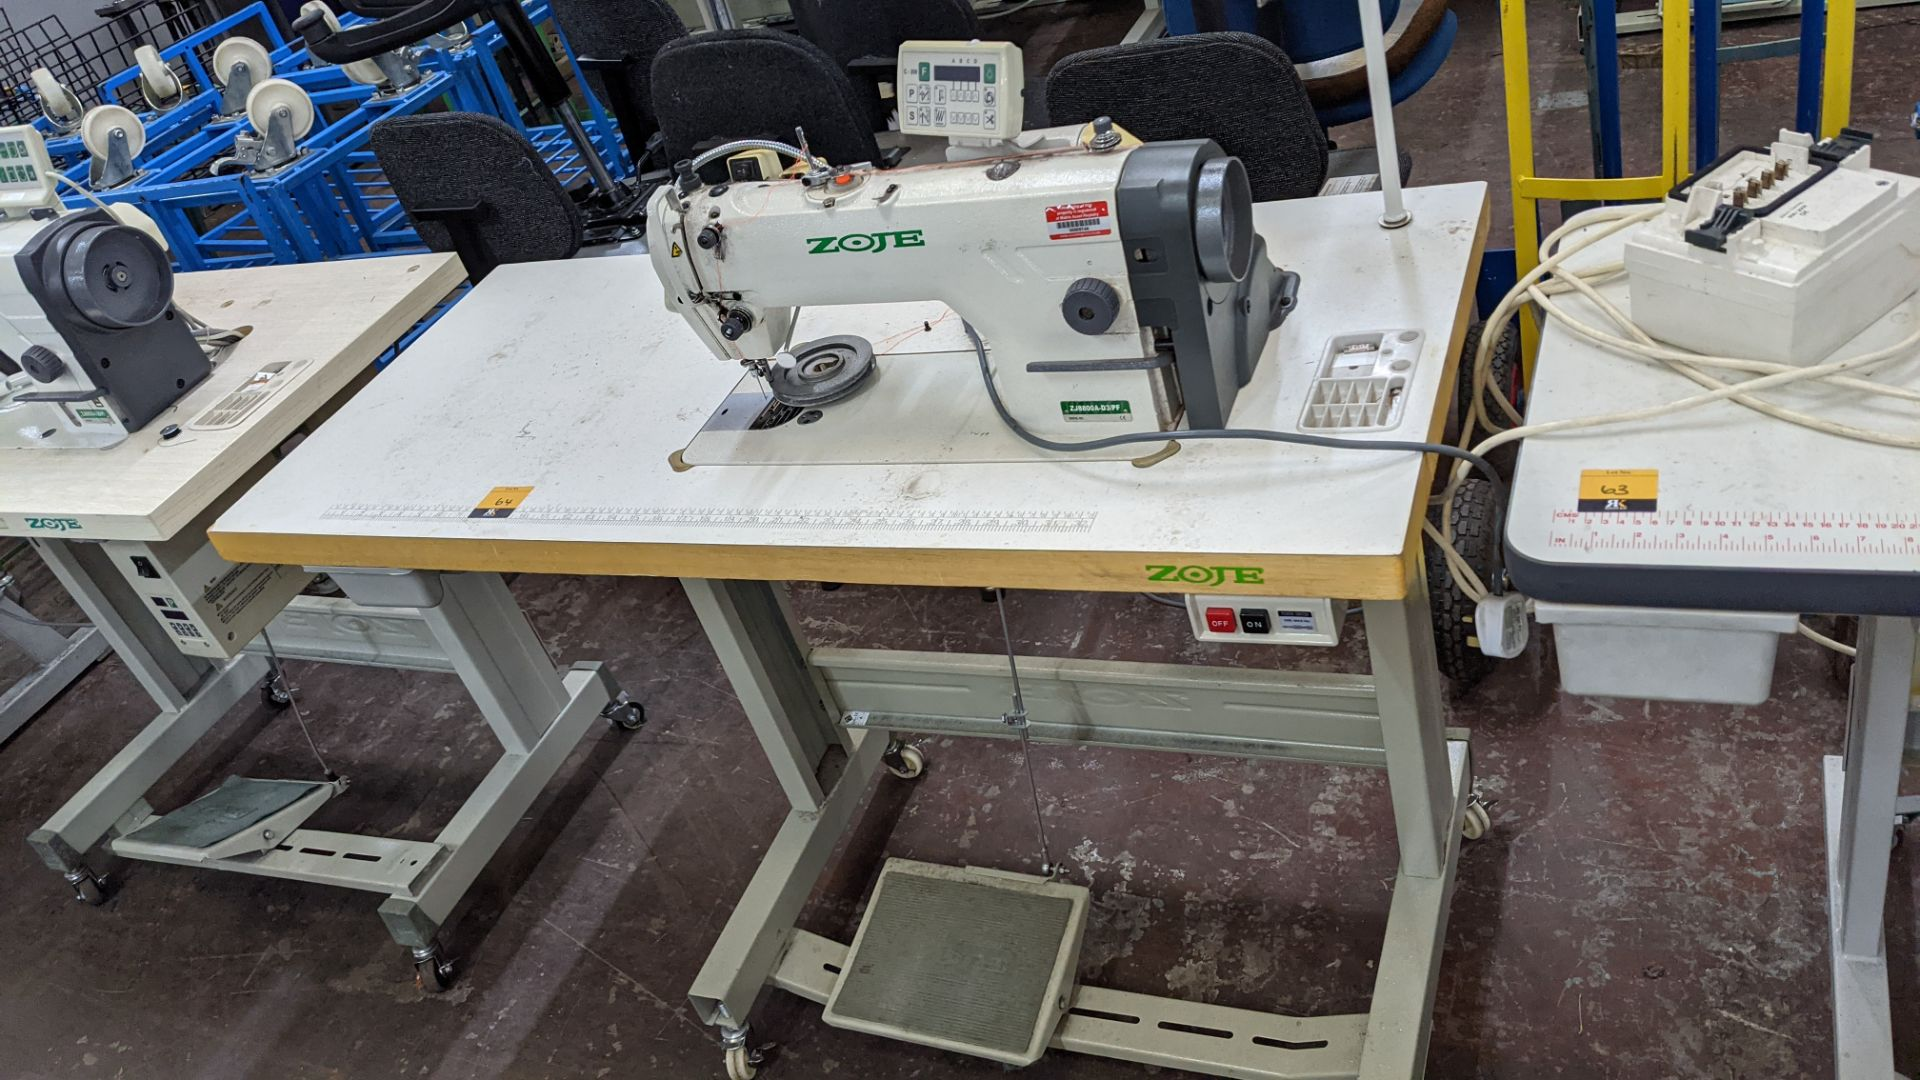 Zoje model ZJ8800A-D3B/PF sewing machine with C-200 controller - Image 2 of 16